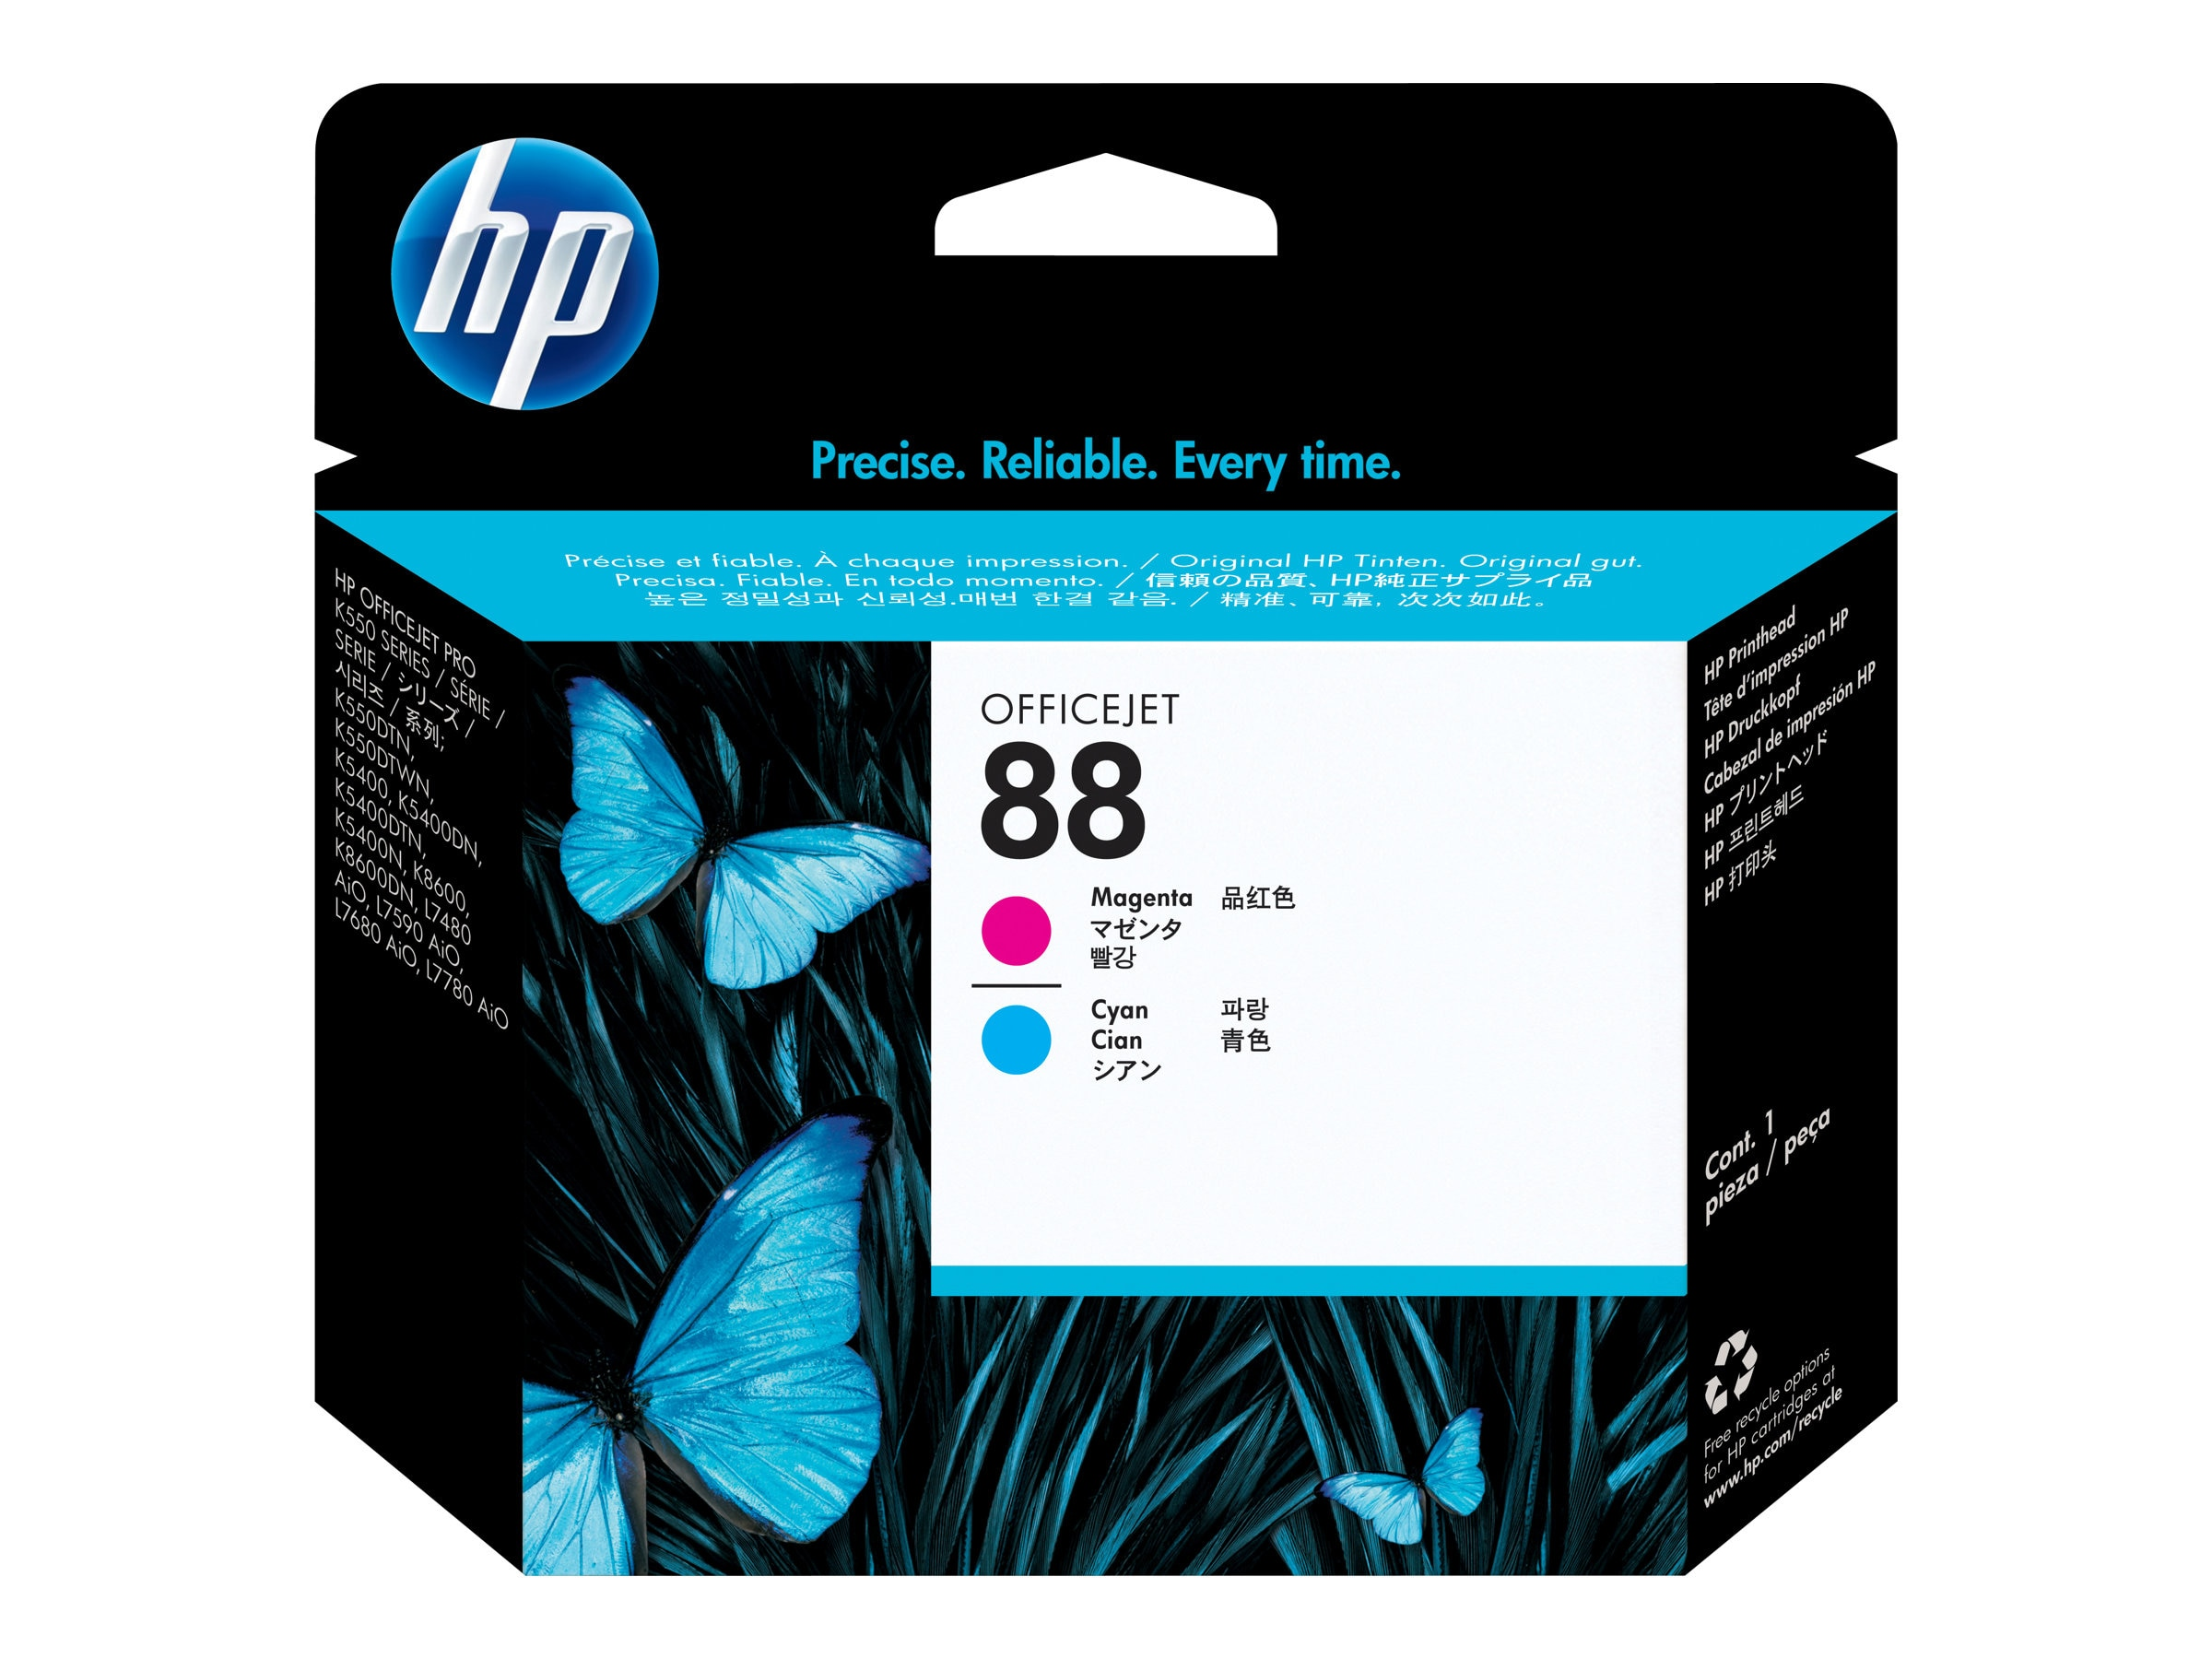 HP 88 Magenta & Cyan Printhead, C9382A, 6125285, Ink Cartridges & Ink Refill Kits